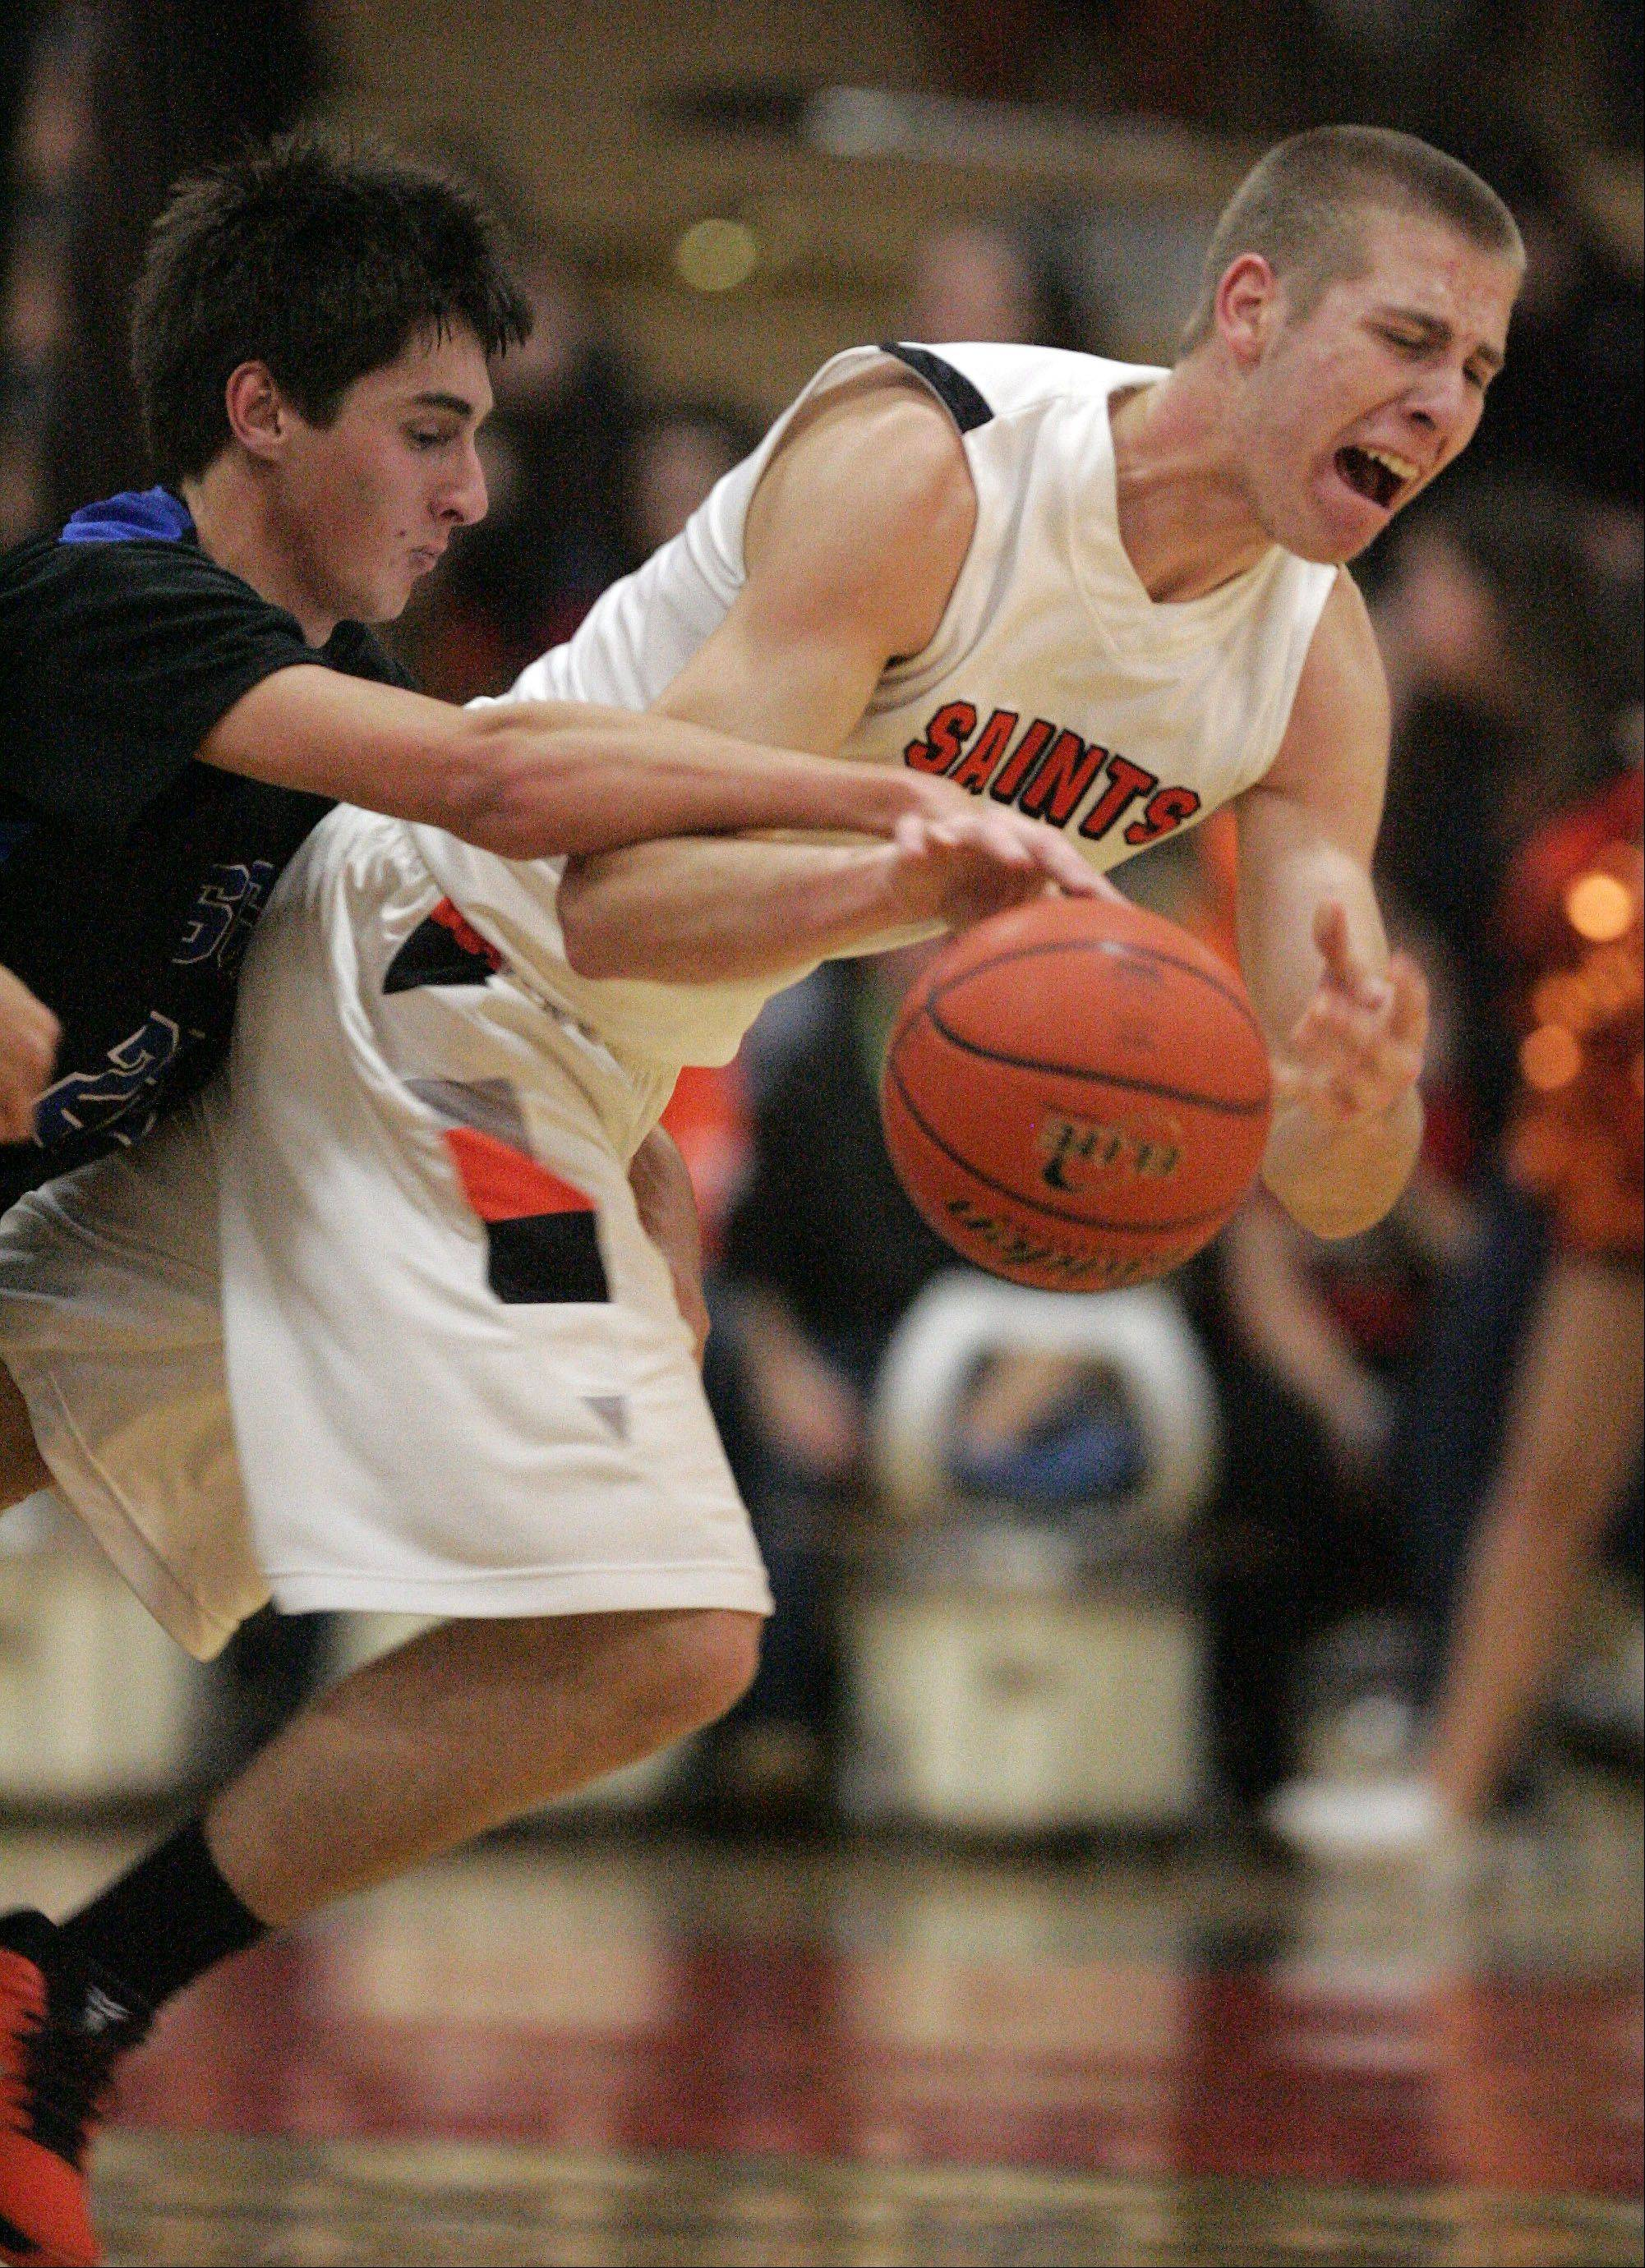 St. Charles North's Kyle Swanson and St. Charles East's Ben Skoog battle for control of a loose ball.